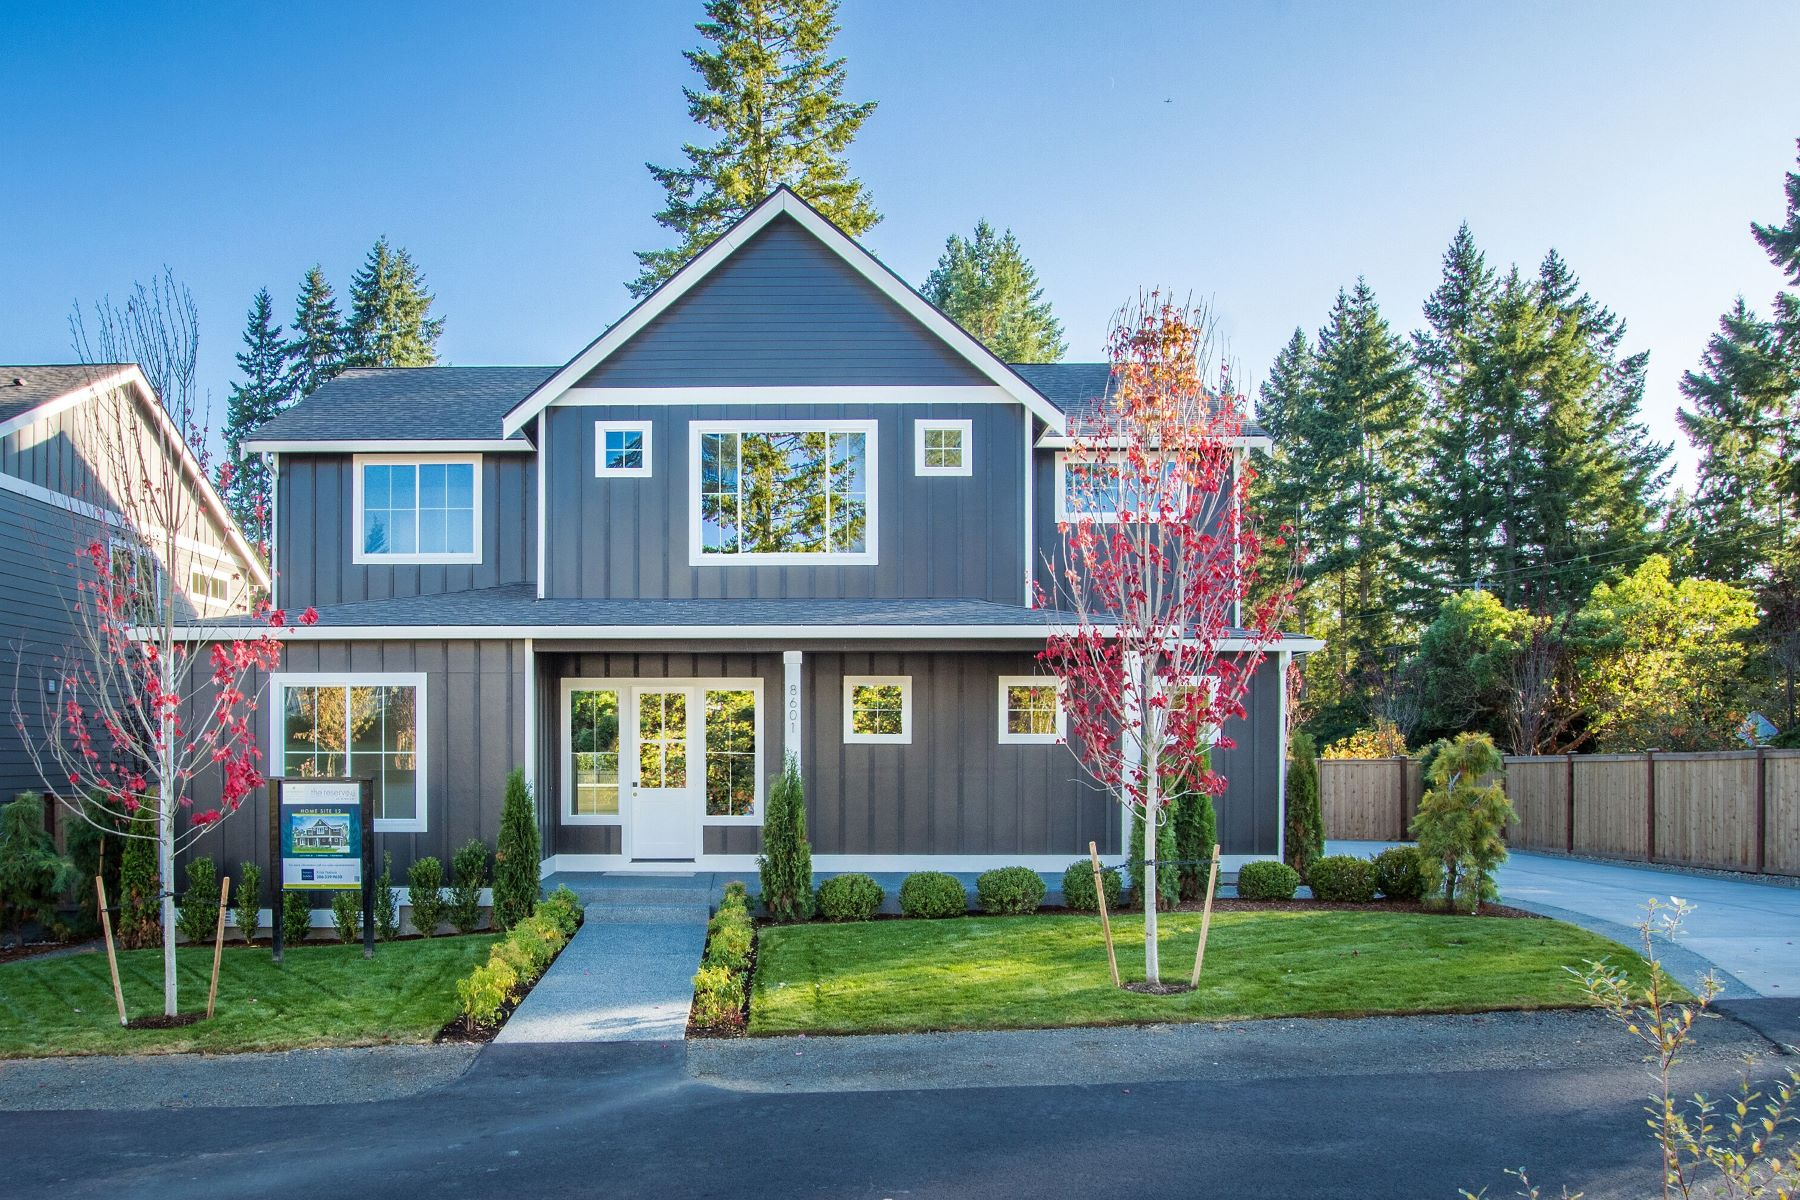 Single Family Homes for Sale at 8601 NE Reserve Wy, Bainbridge Island, WA 98110 8601 NE Reserve Wy Bainbridge Island, Washington 98110 United States